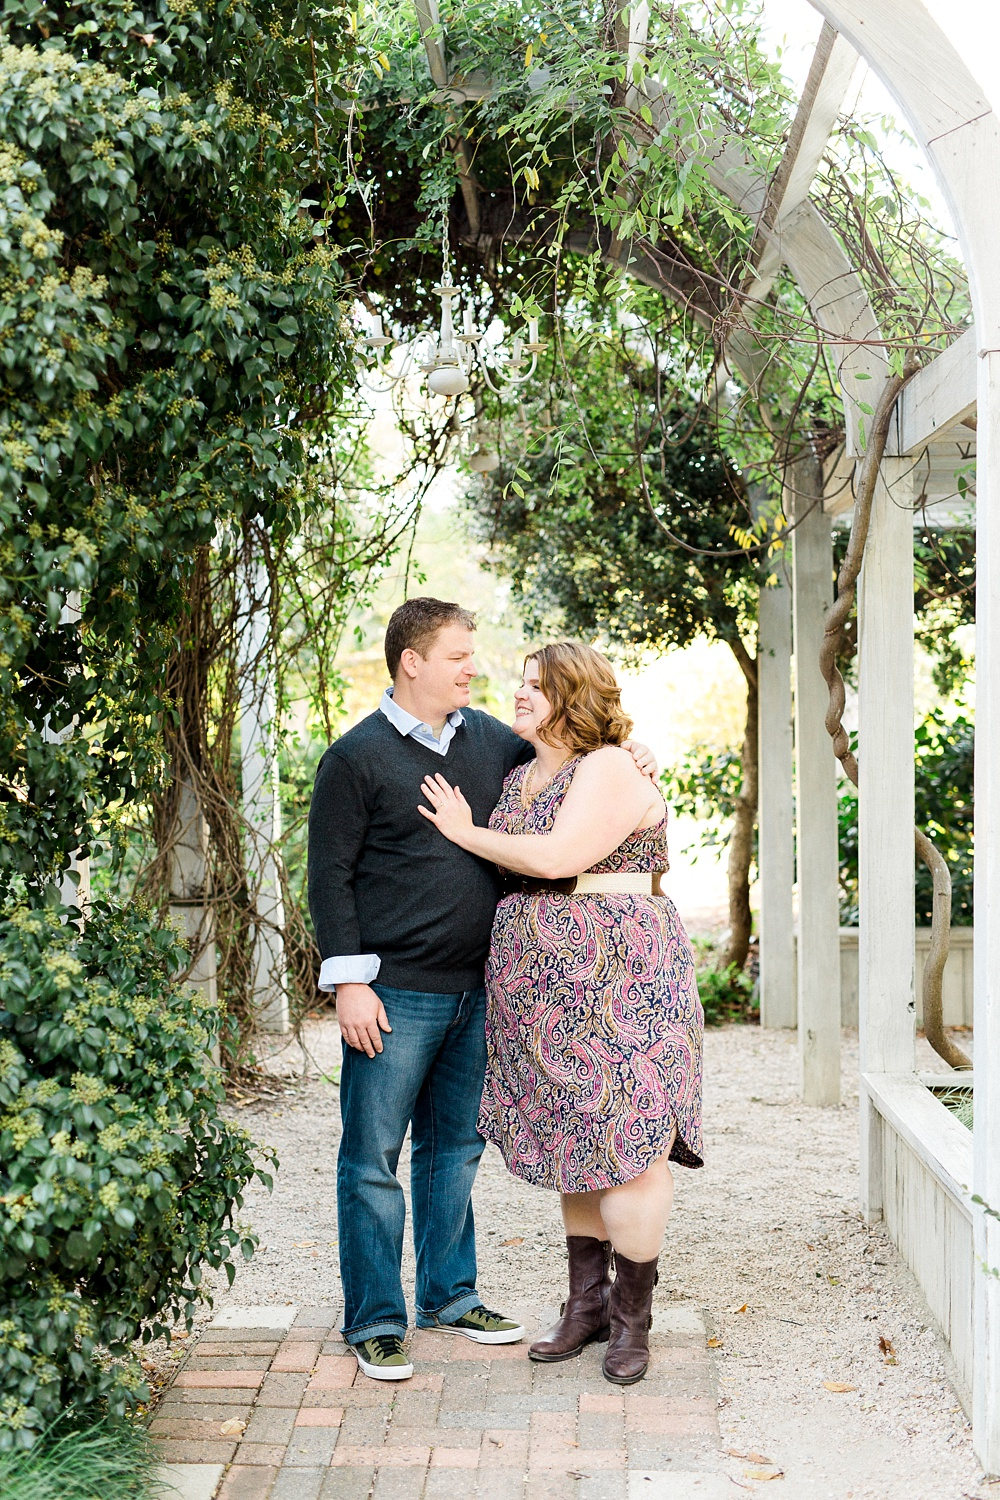 Engagement Session at NC State's JC Raulston Arboretum in Raleigh, NC